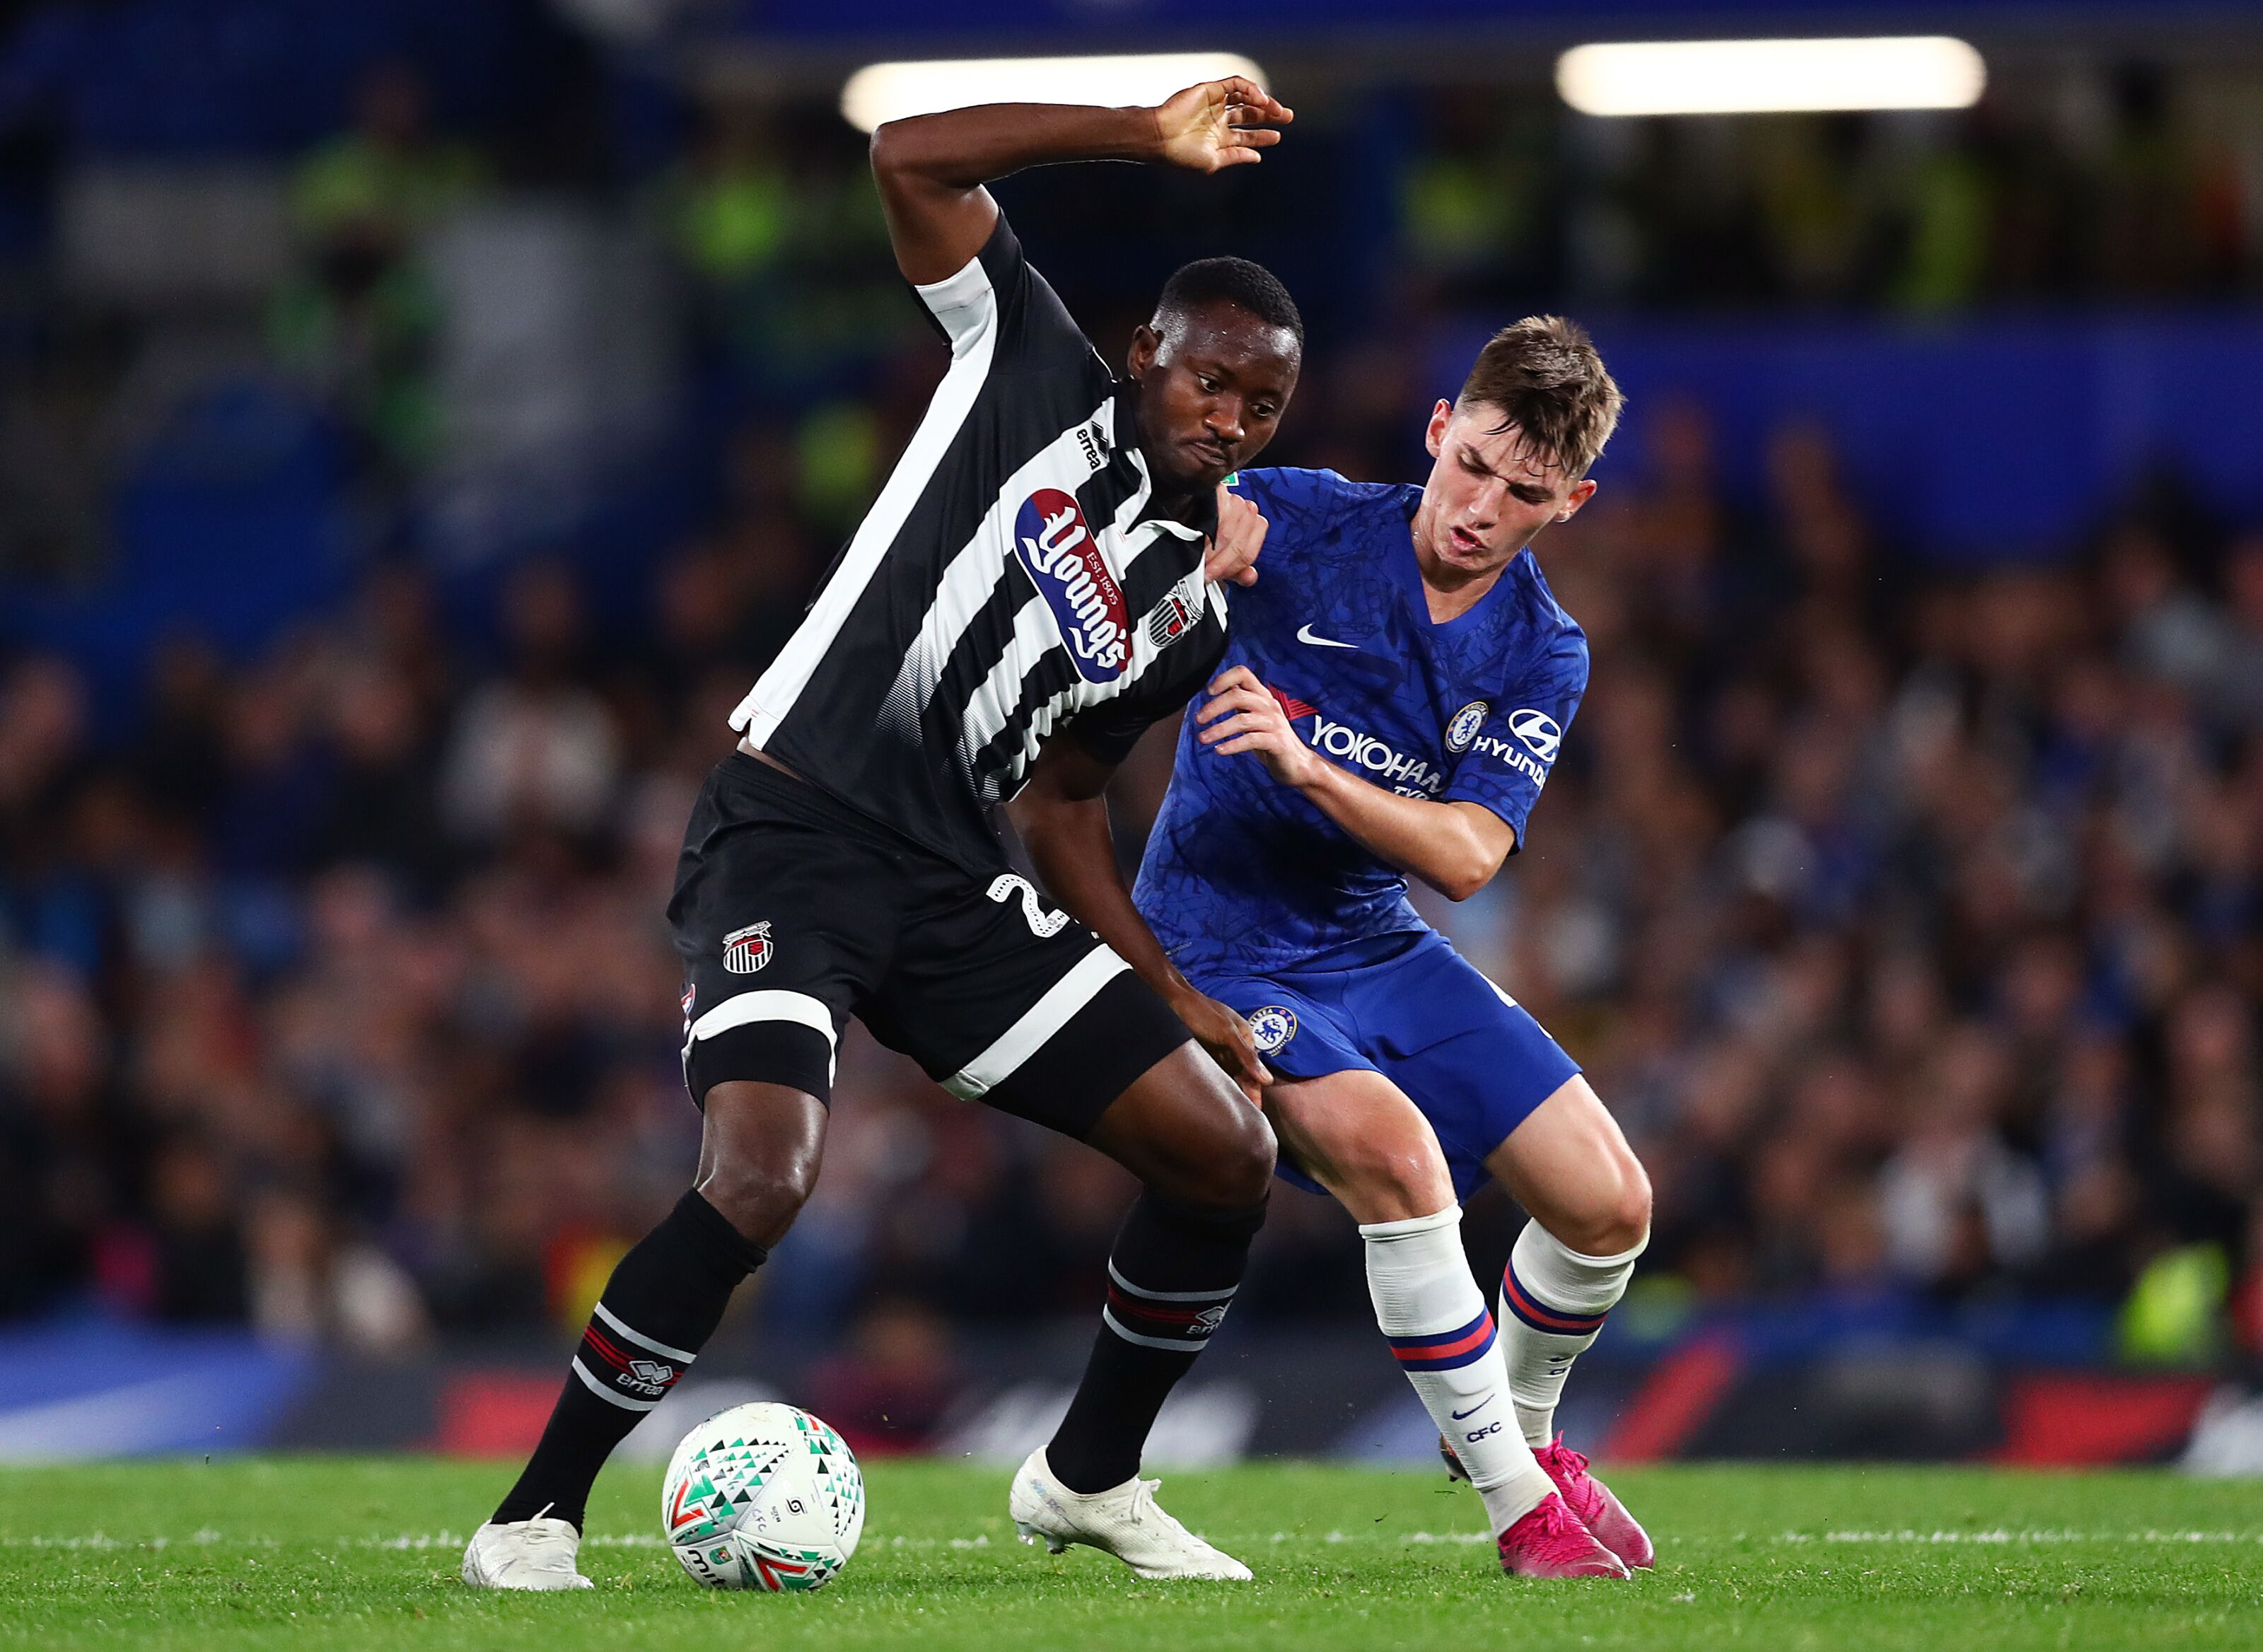 Chelsea's injury crisis would be far more worrying without the academy